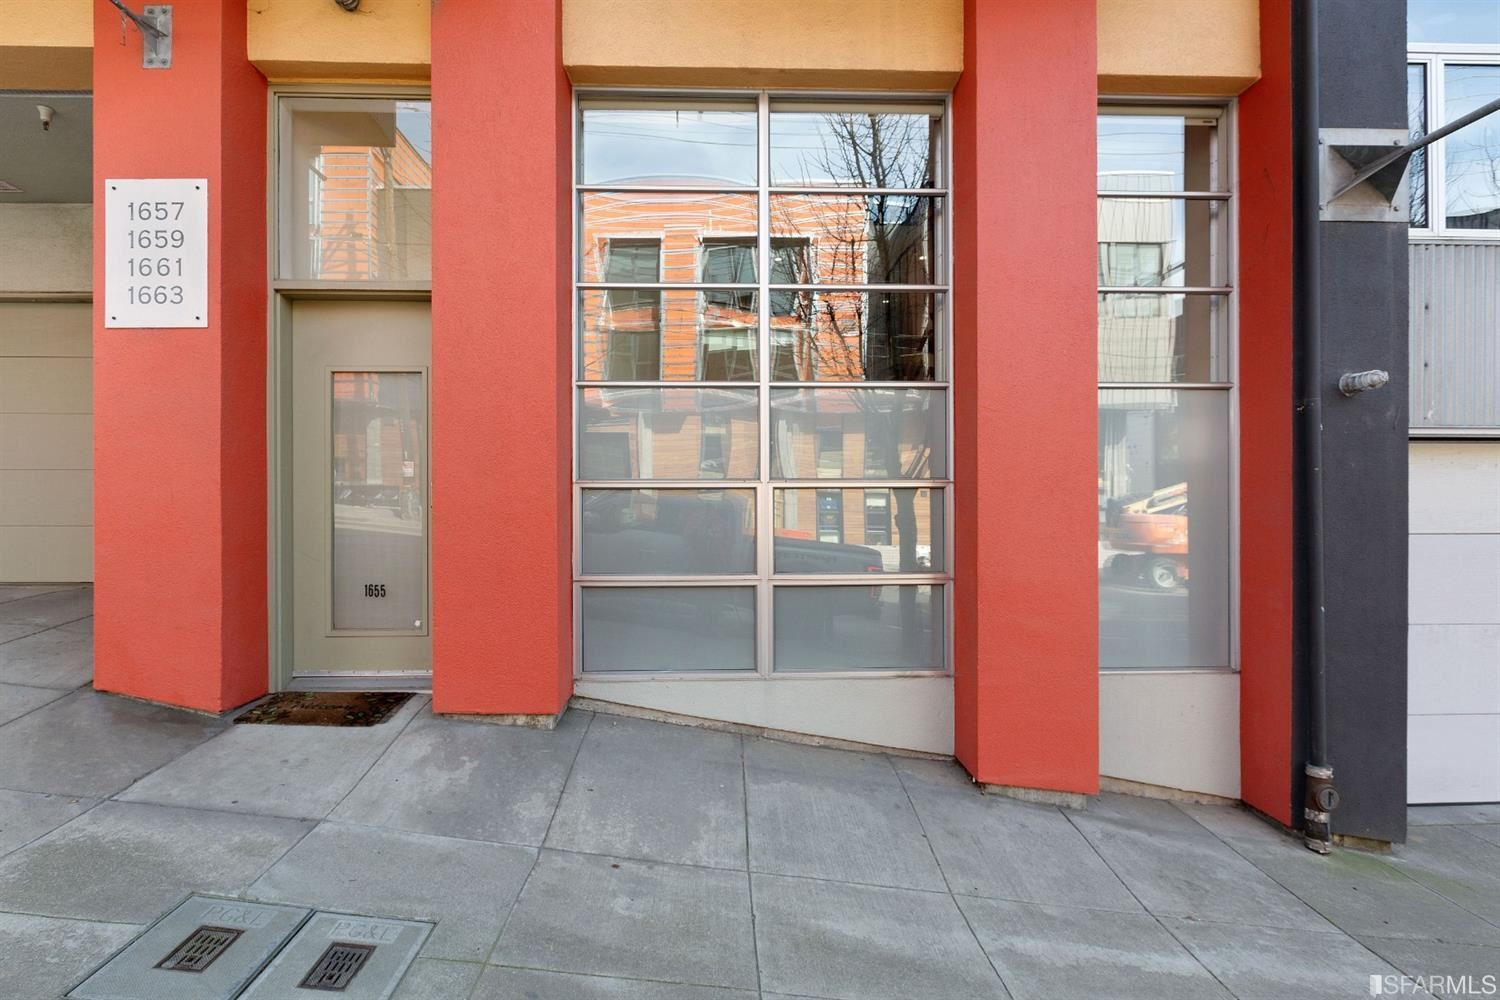 1655 18th Street, San Francisco, CA 94107 - #: 495690